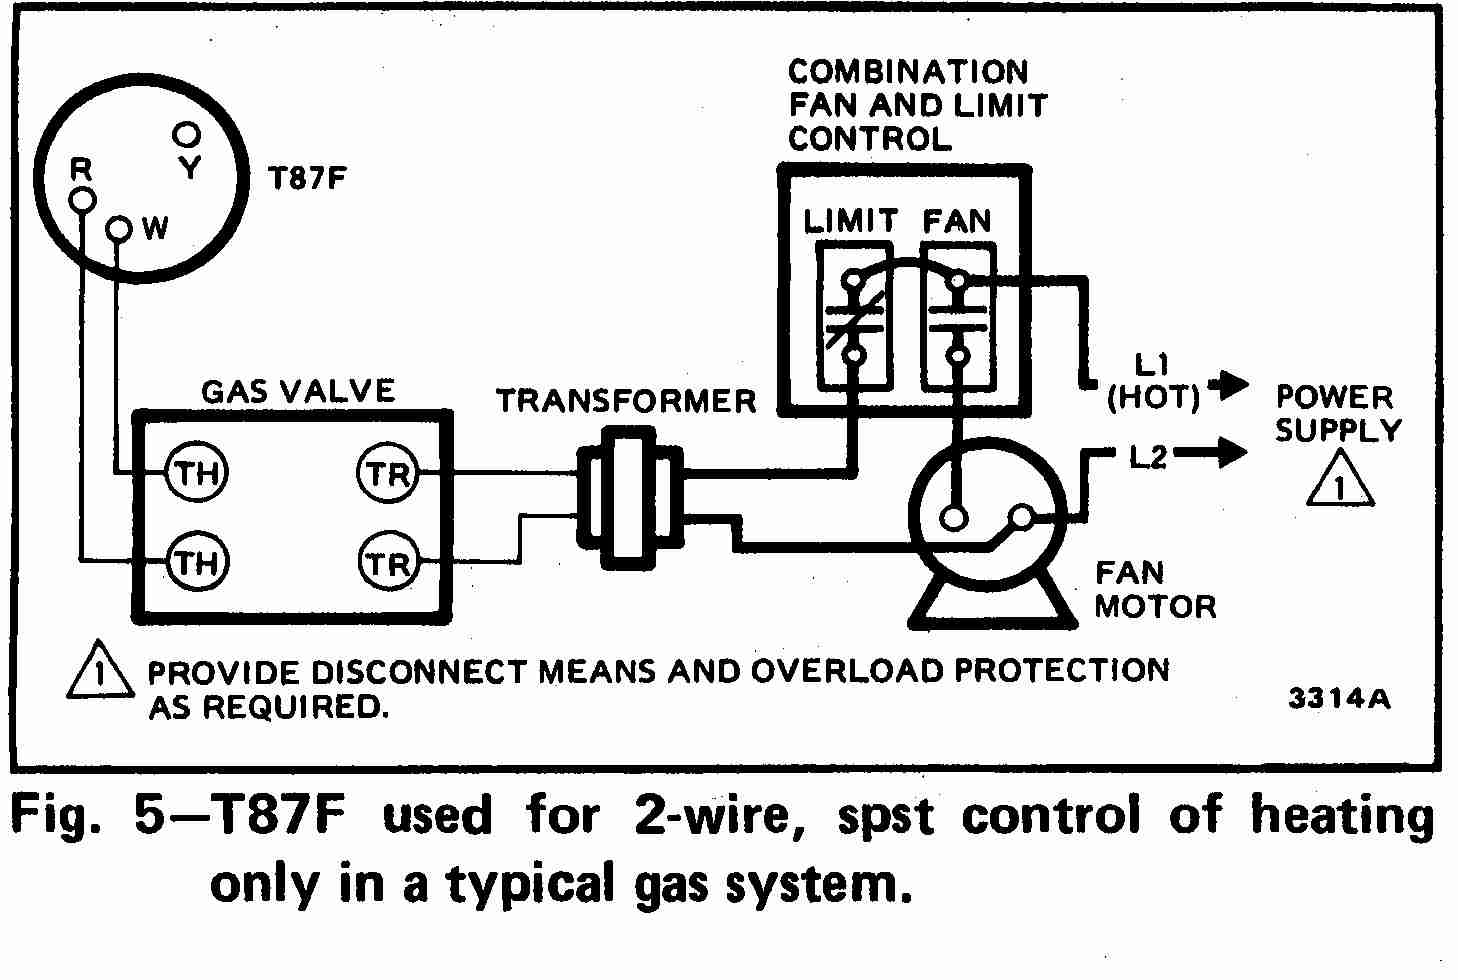 TT_T87F_0002_2Wg_DJF guide to wiring connections for room thermostats 5 wire thermostat wiring diagram at soozxer.org